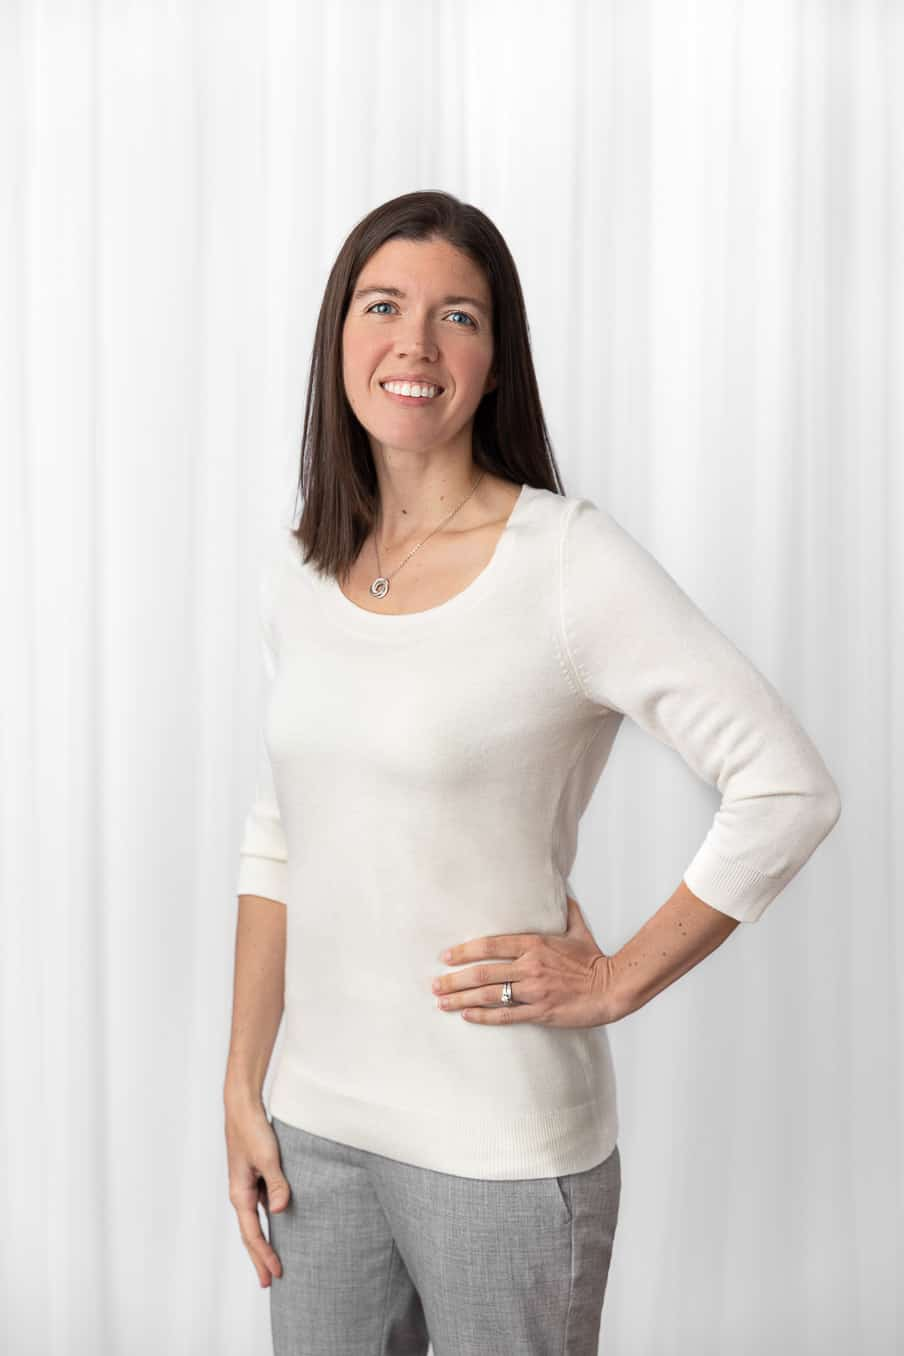 Portrait of Erin Massie standing in front of white sheer curtains in a white studio